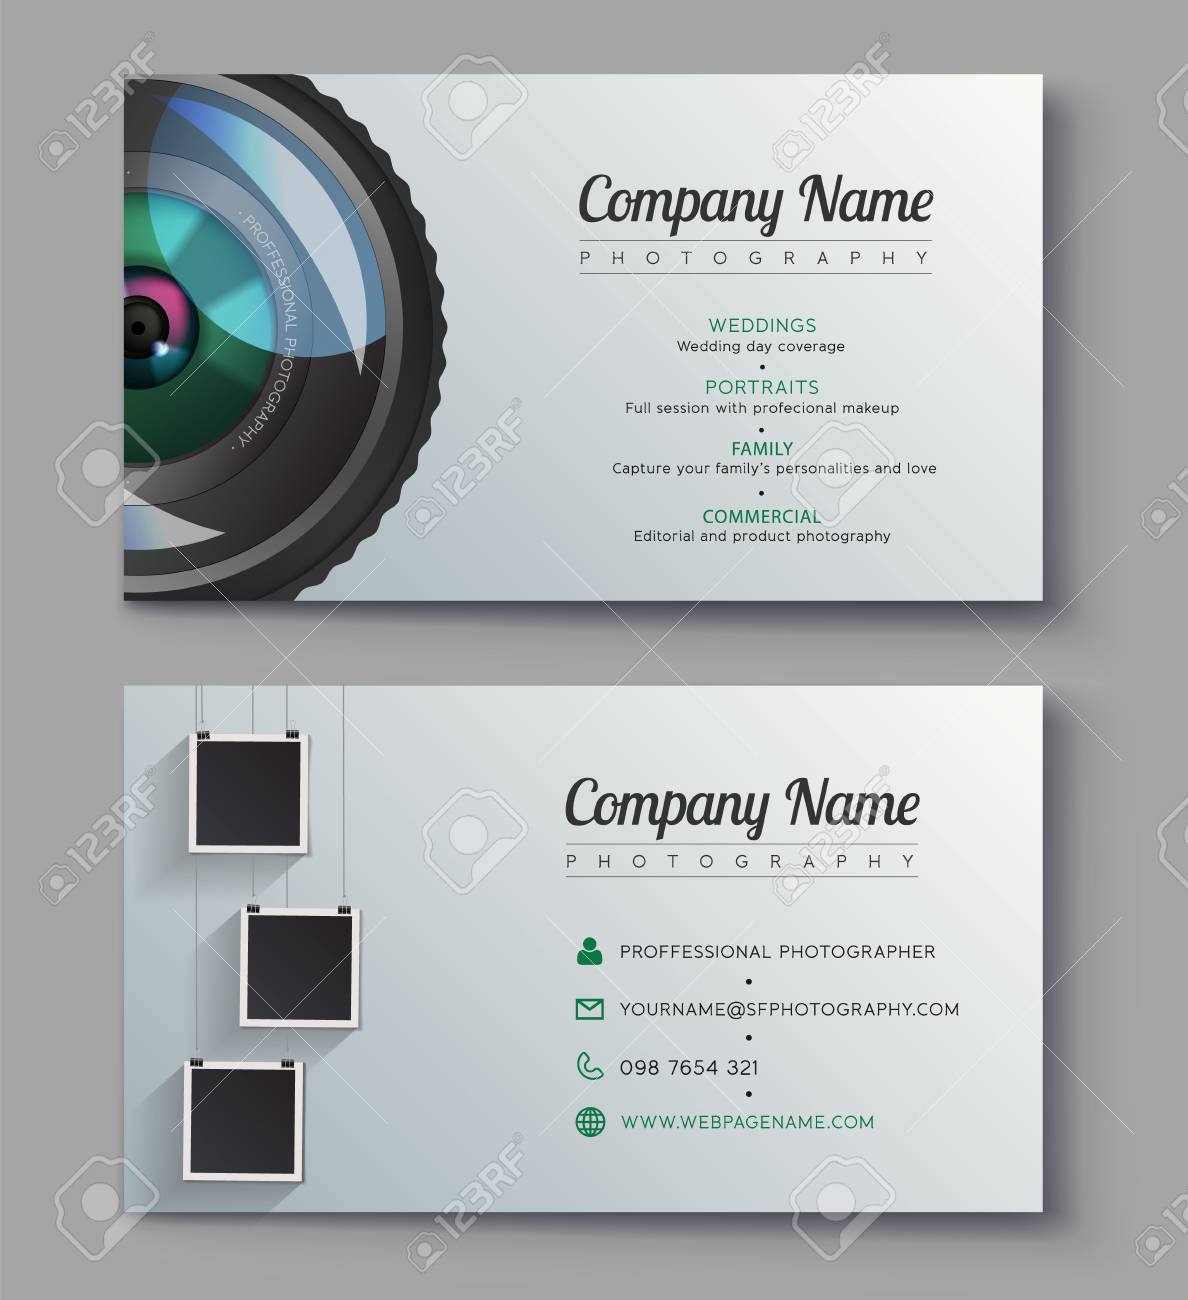 Photographer Business Card Template. Design For Photography Studio ...